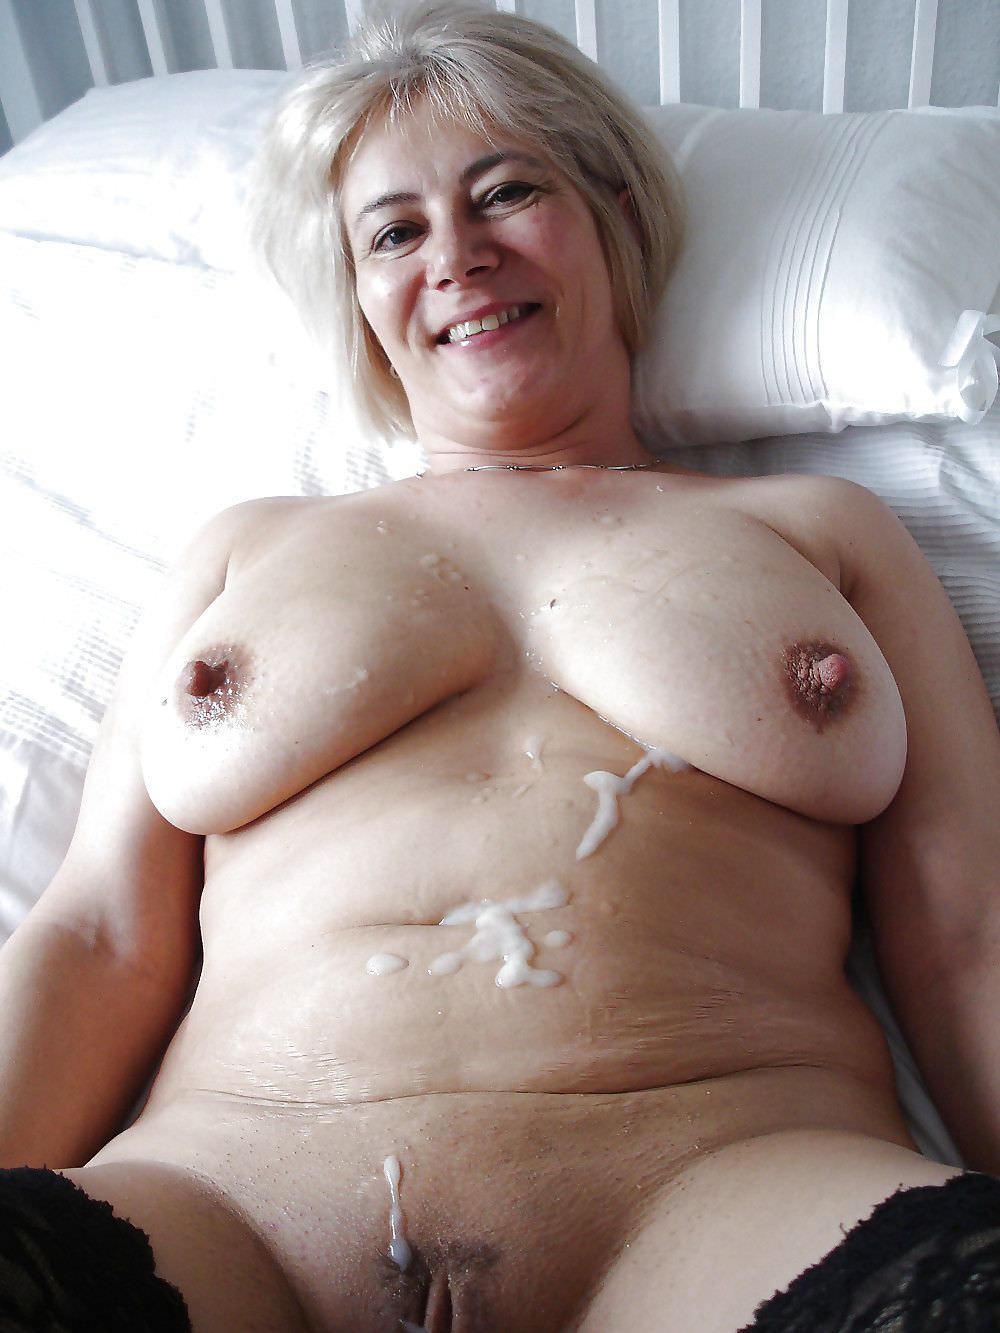 Have a nude women lot of cum on pussy very cool porn